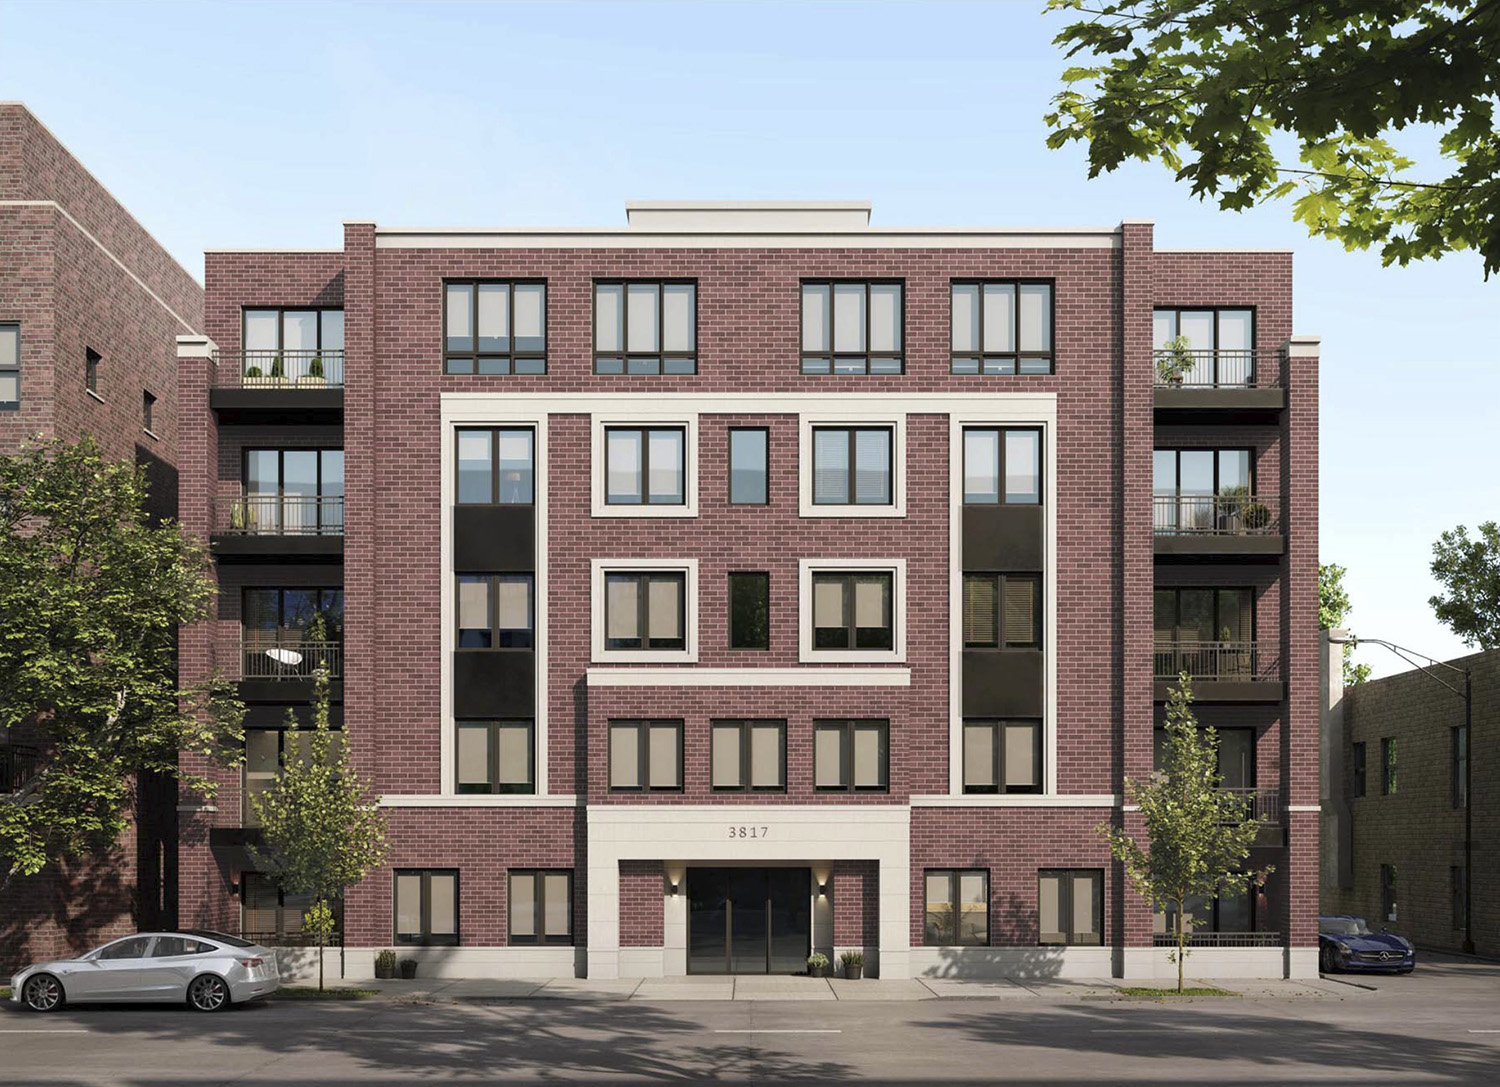 3817 N Ashland Avenue. Rendering by 360 Design Studio